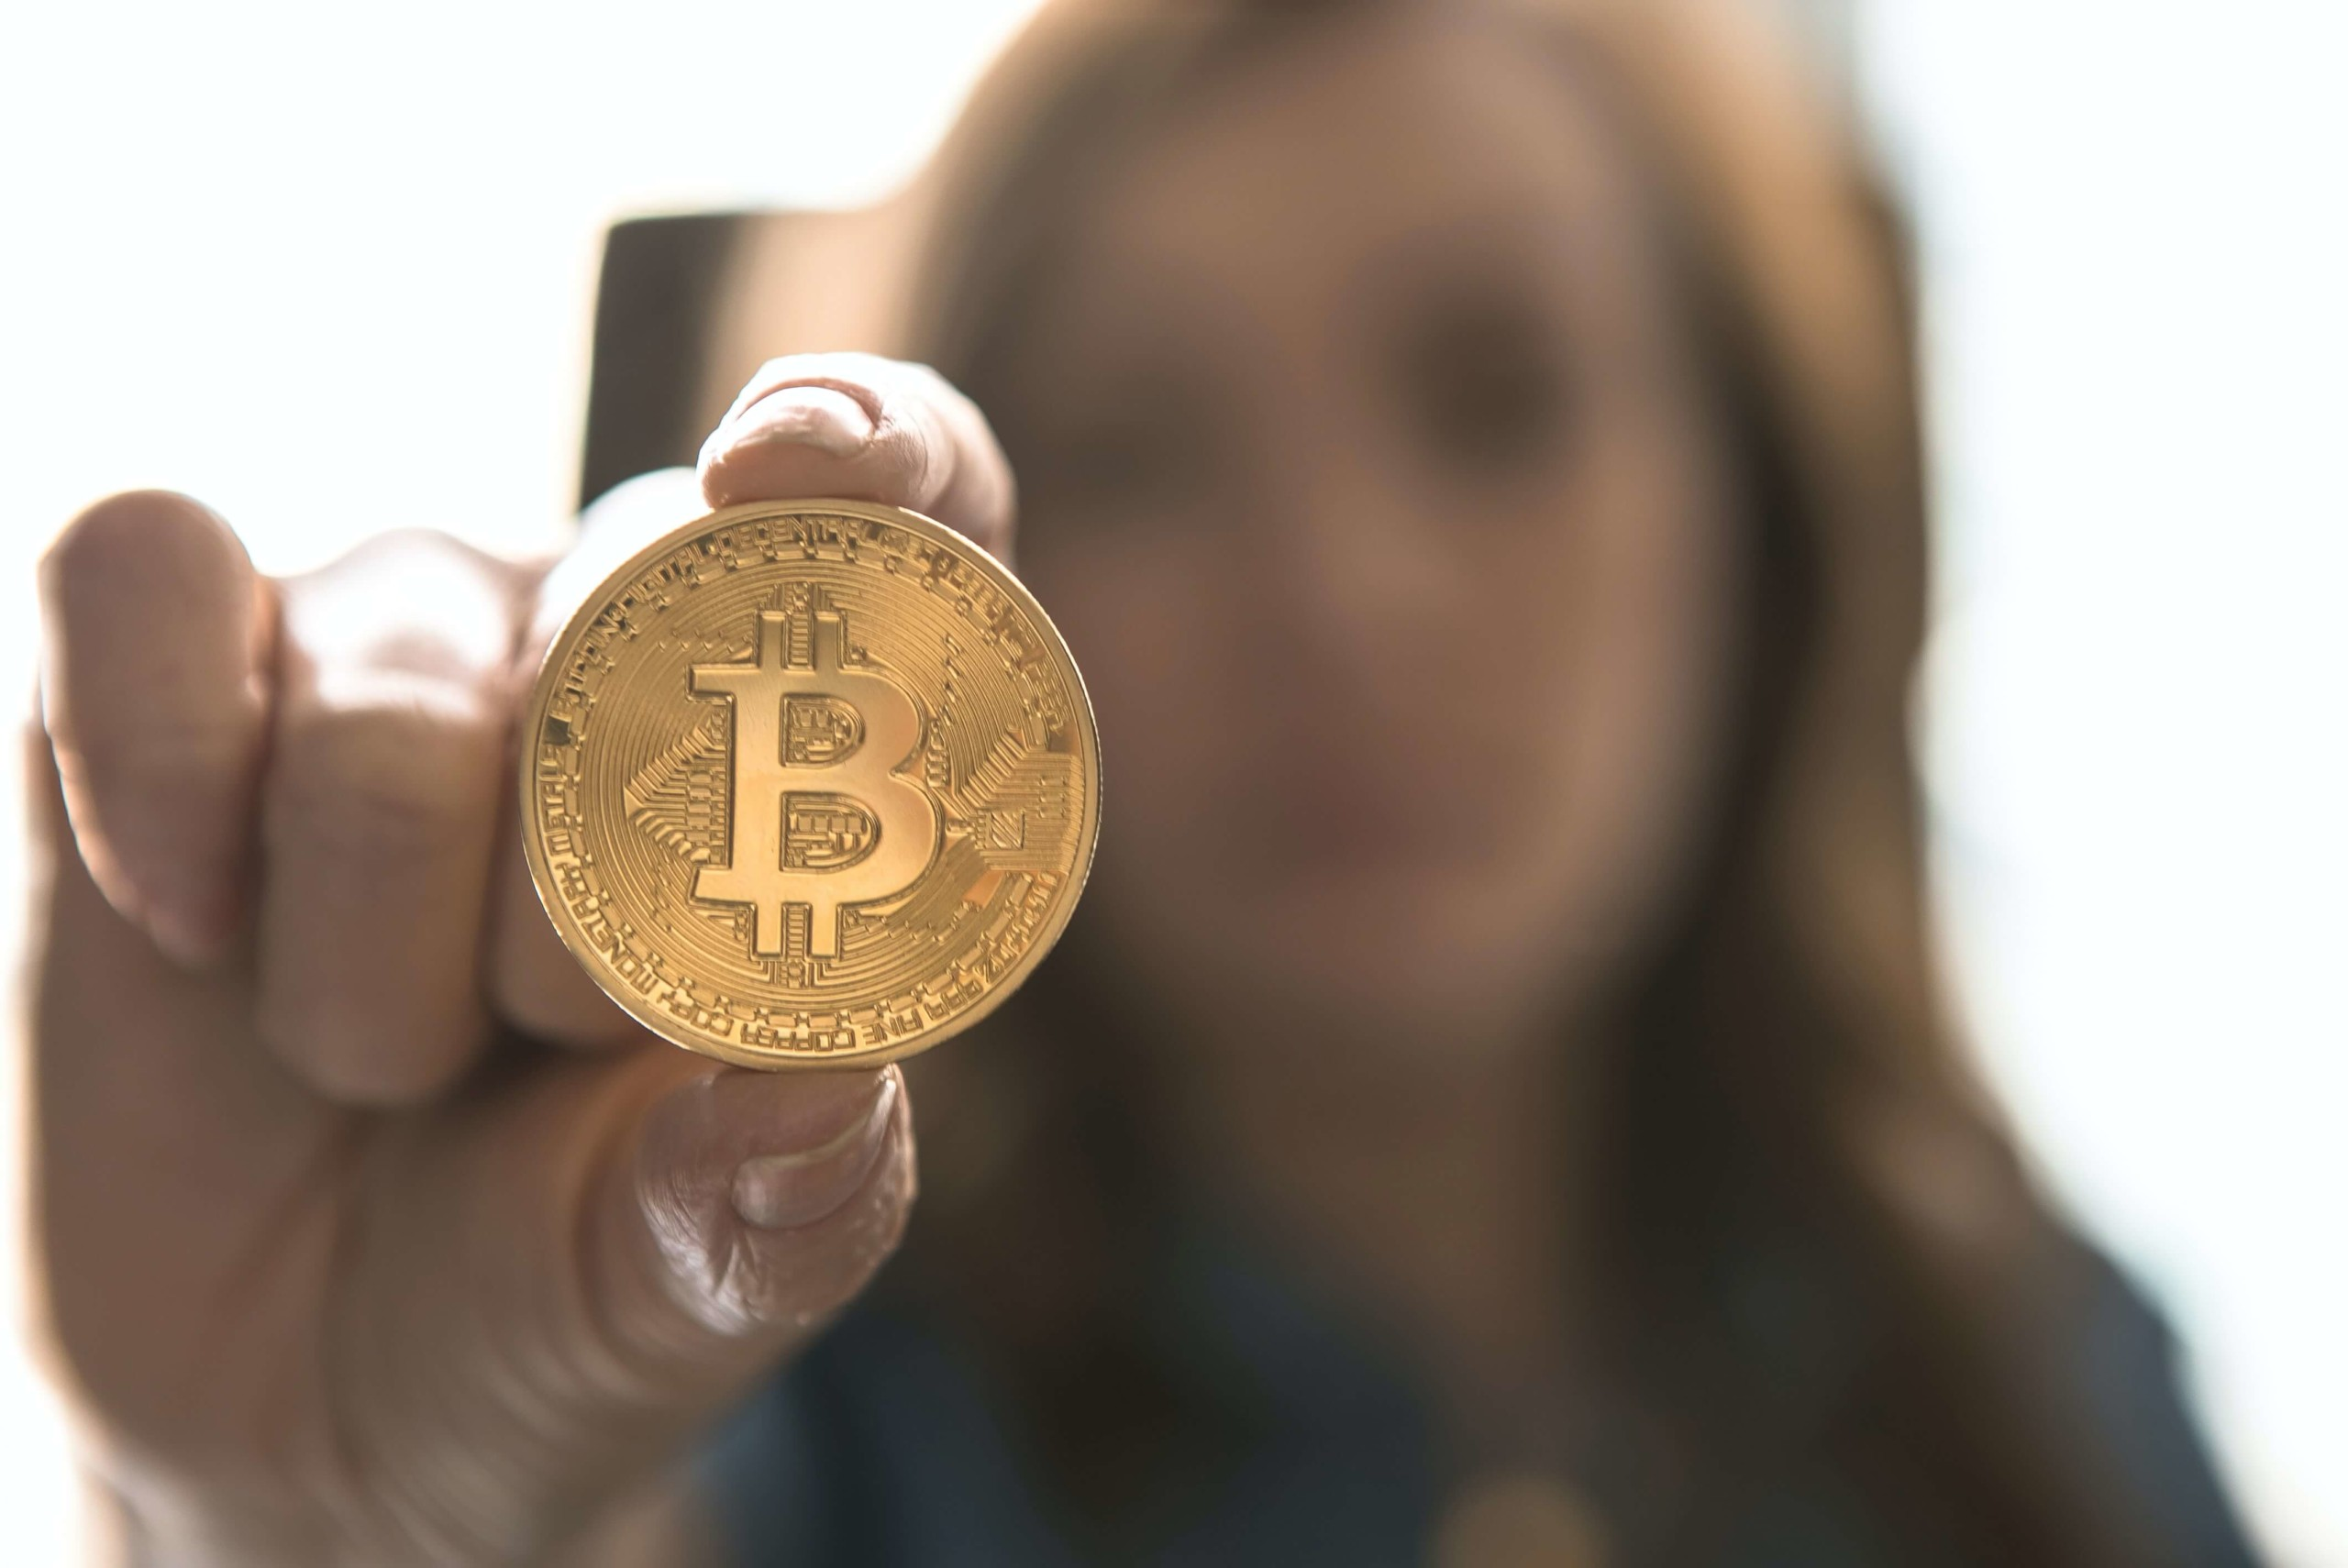 Person holding up bitcoin to represent processing digital and crytocurrency.